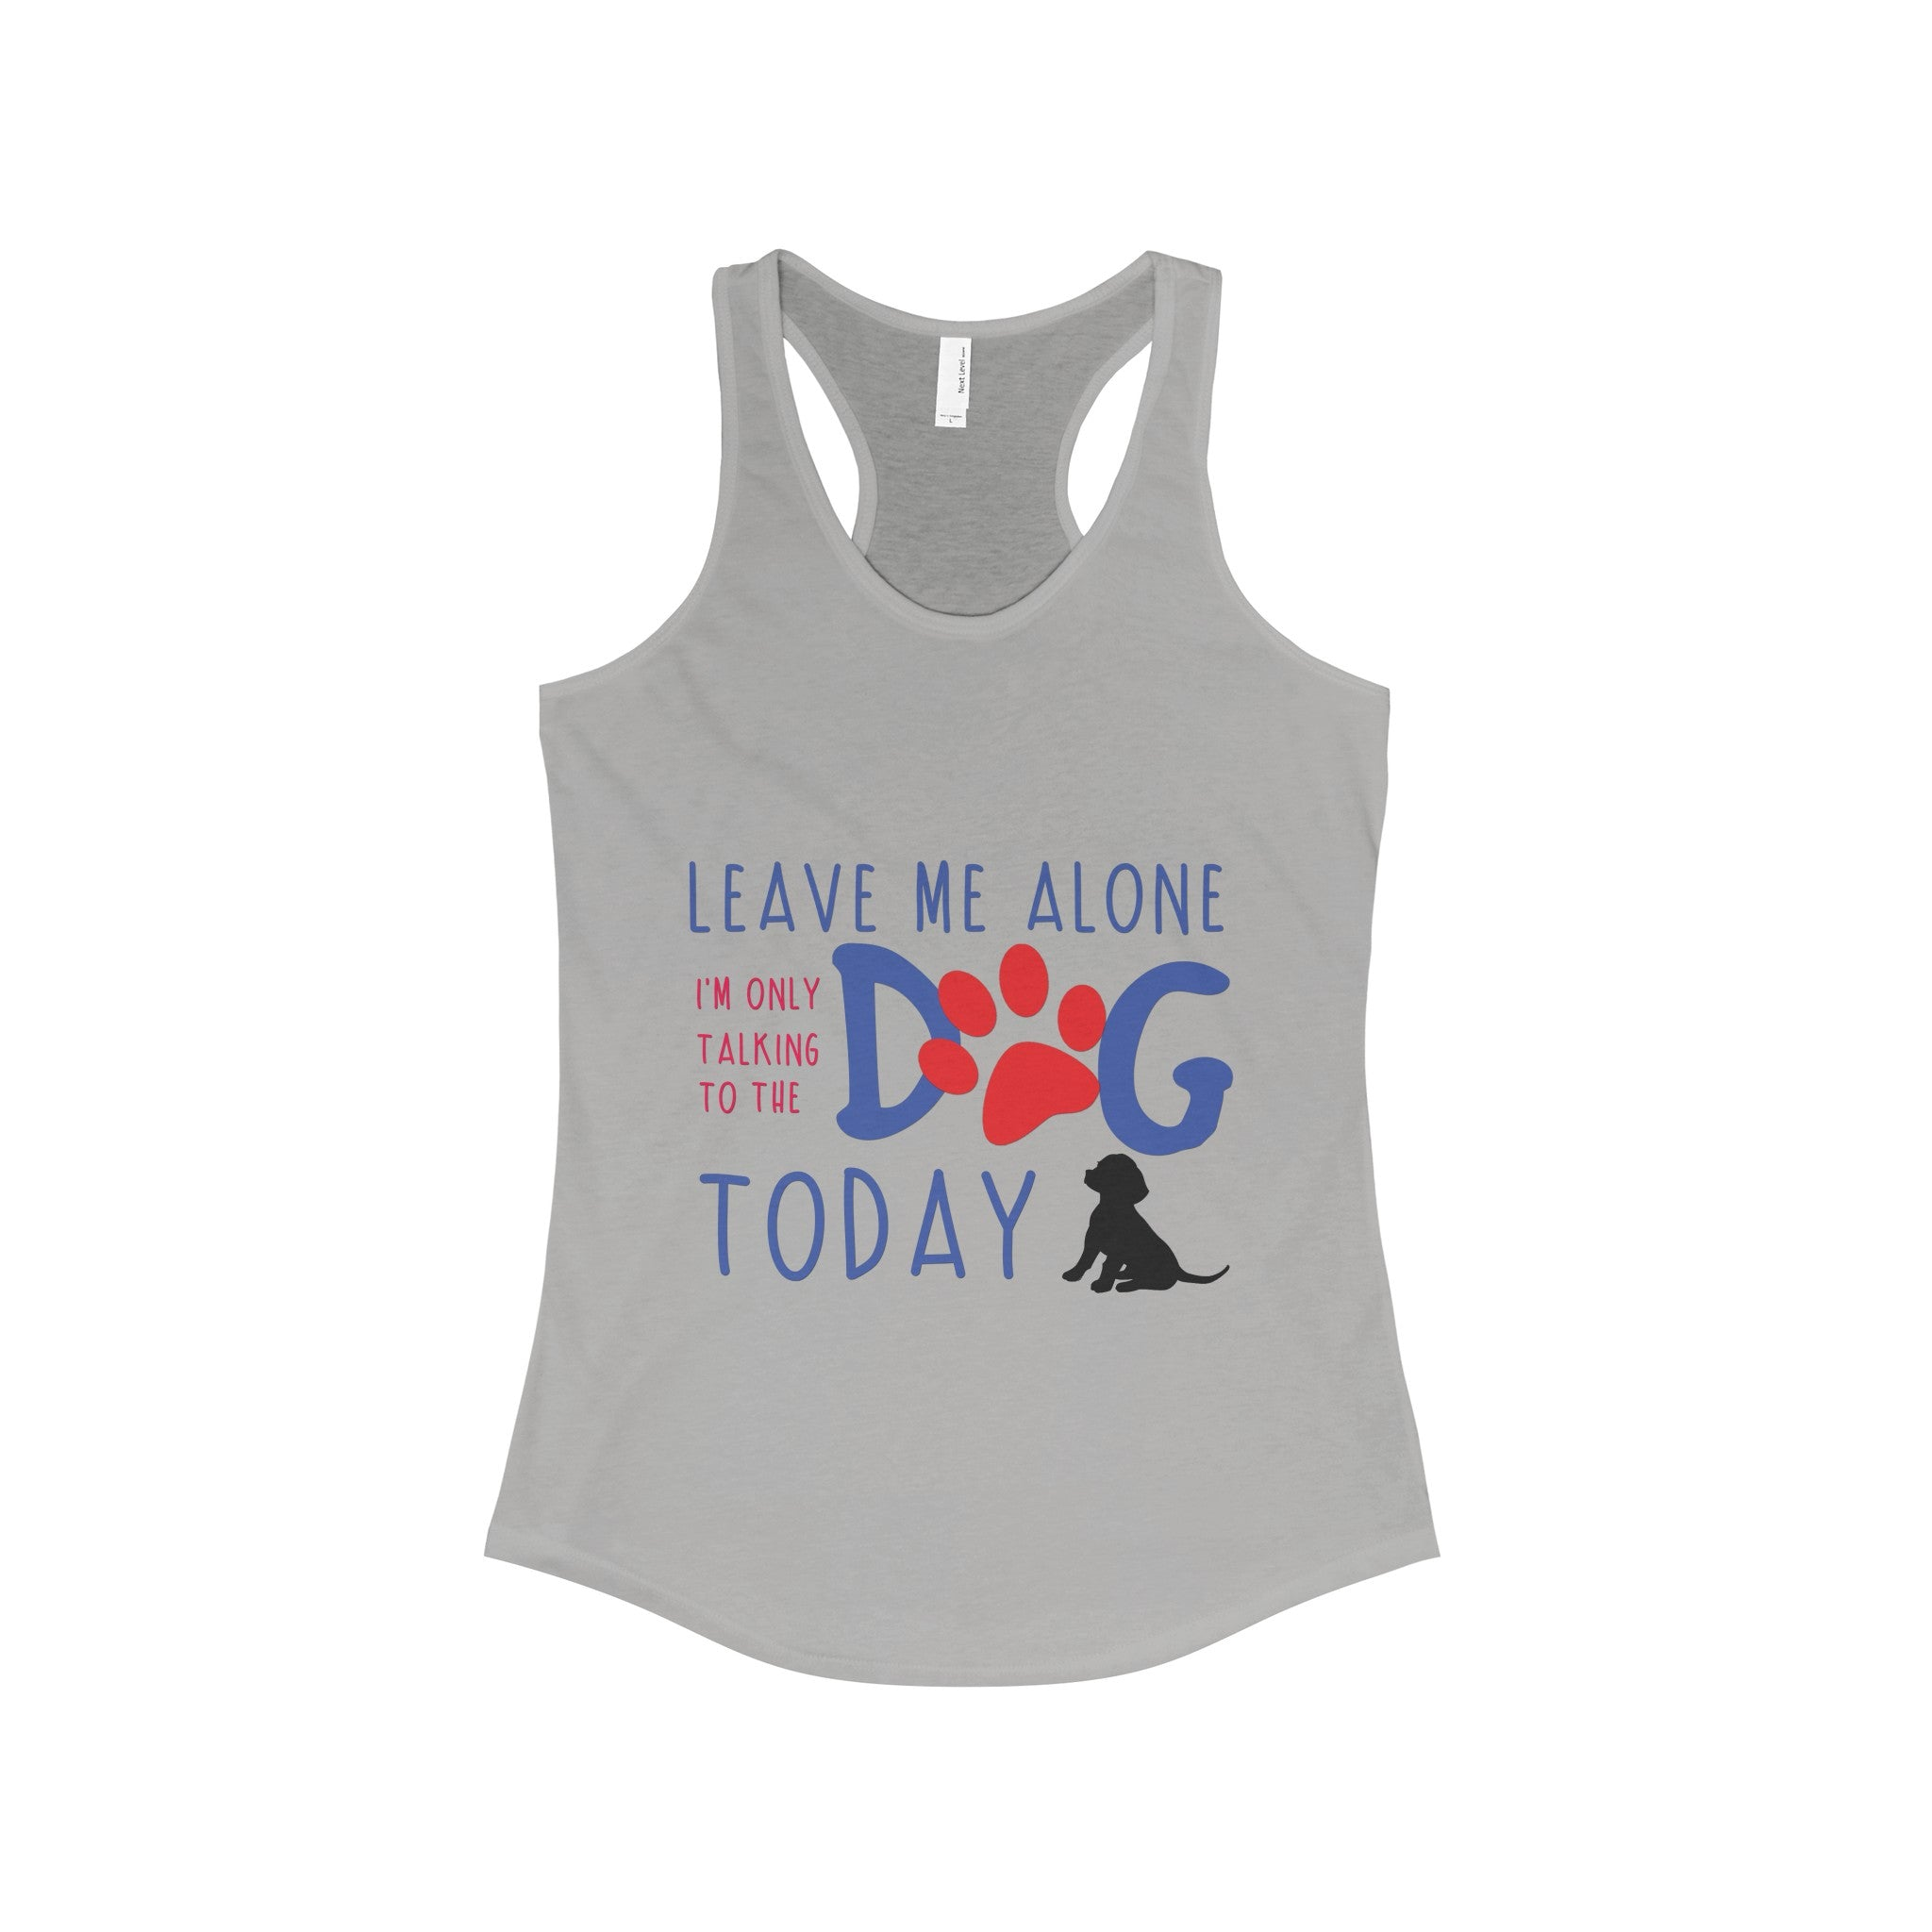 Leave me alone I'm only talking to the dog today Womans Tank Top